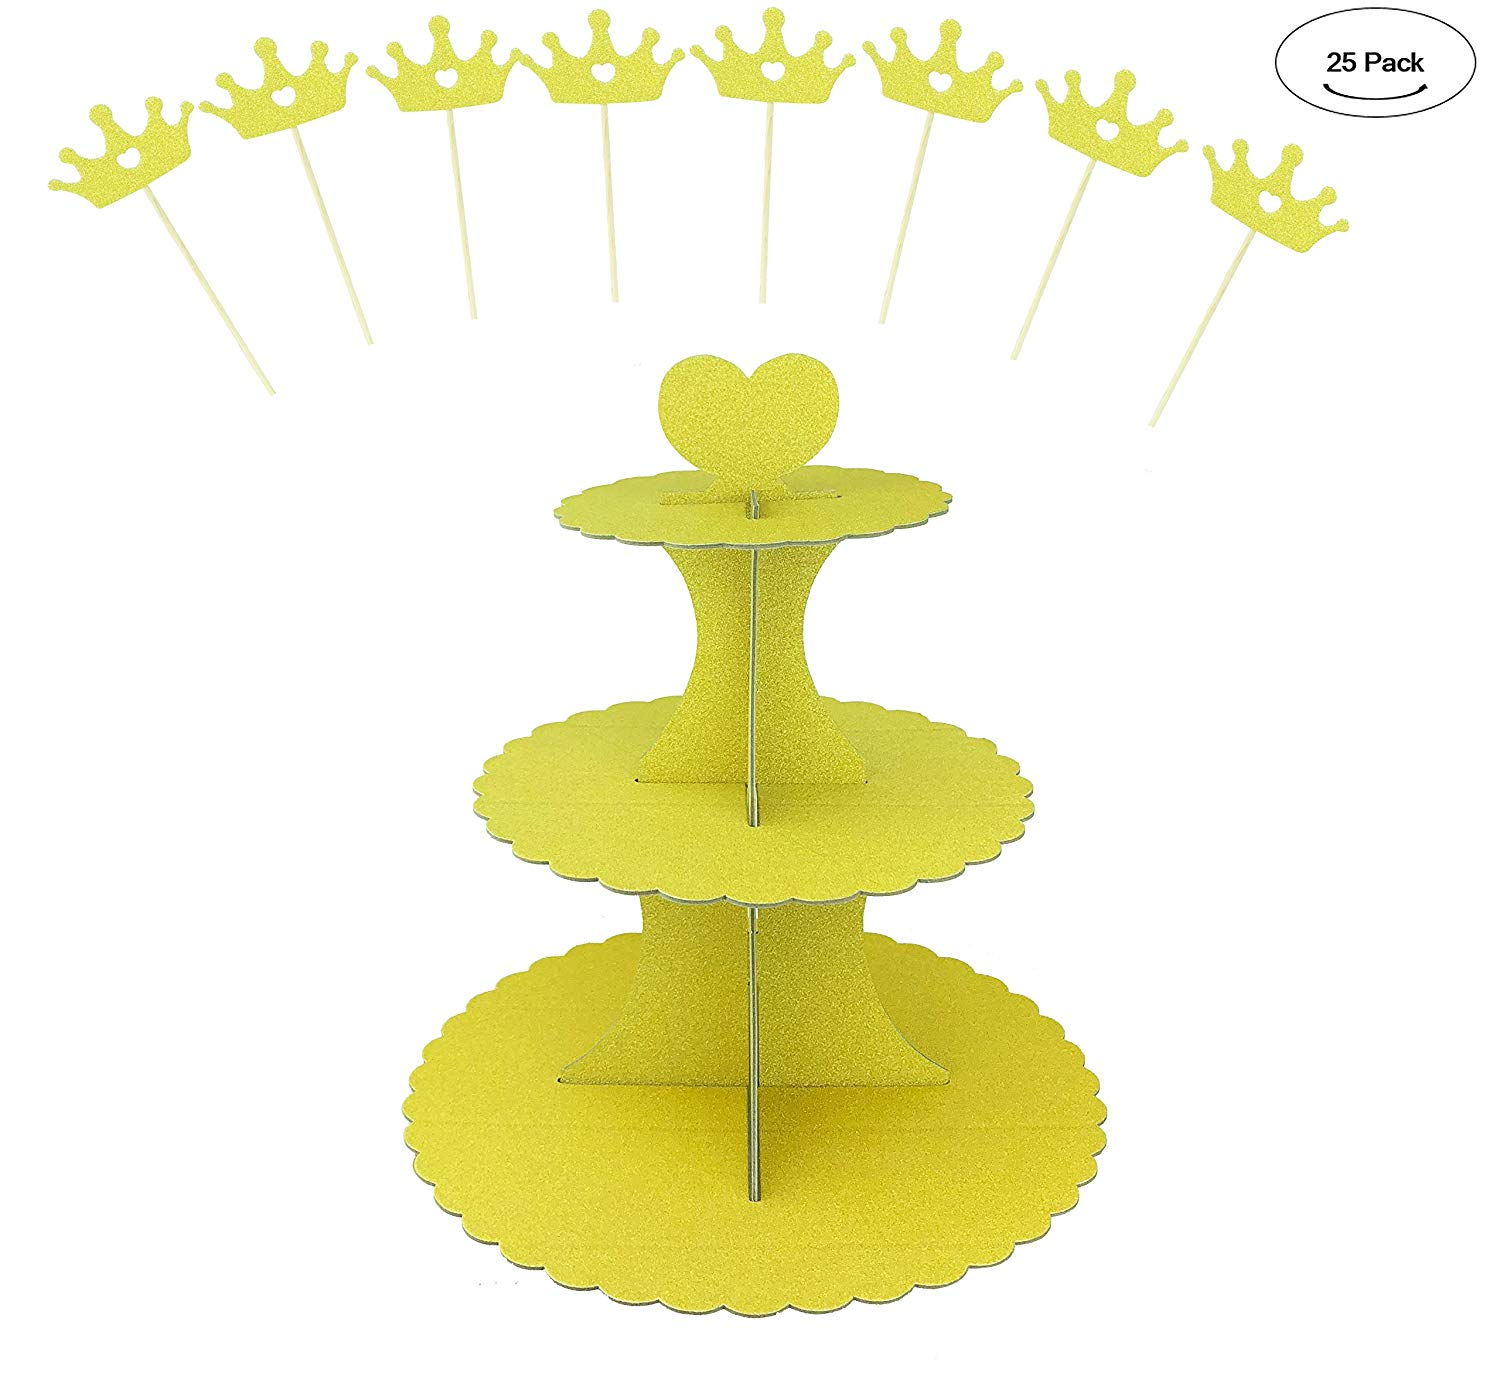 Carboard Cupcake Stand, Aucheer Gold Cardboard Cupcake Stand 3 tier Gold Glitter (1 Pack) and Glitter Gold Crown cupcake topper (24 PCS) for Dessert Birthdays Party Decoration - Gold